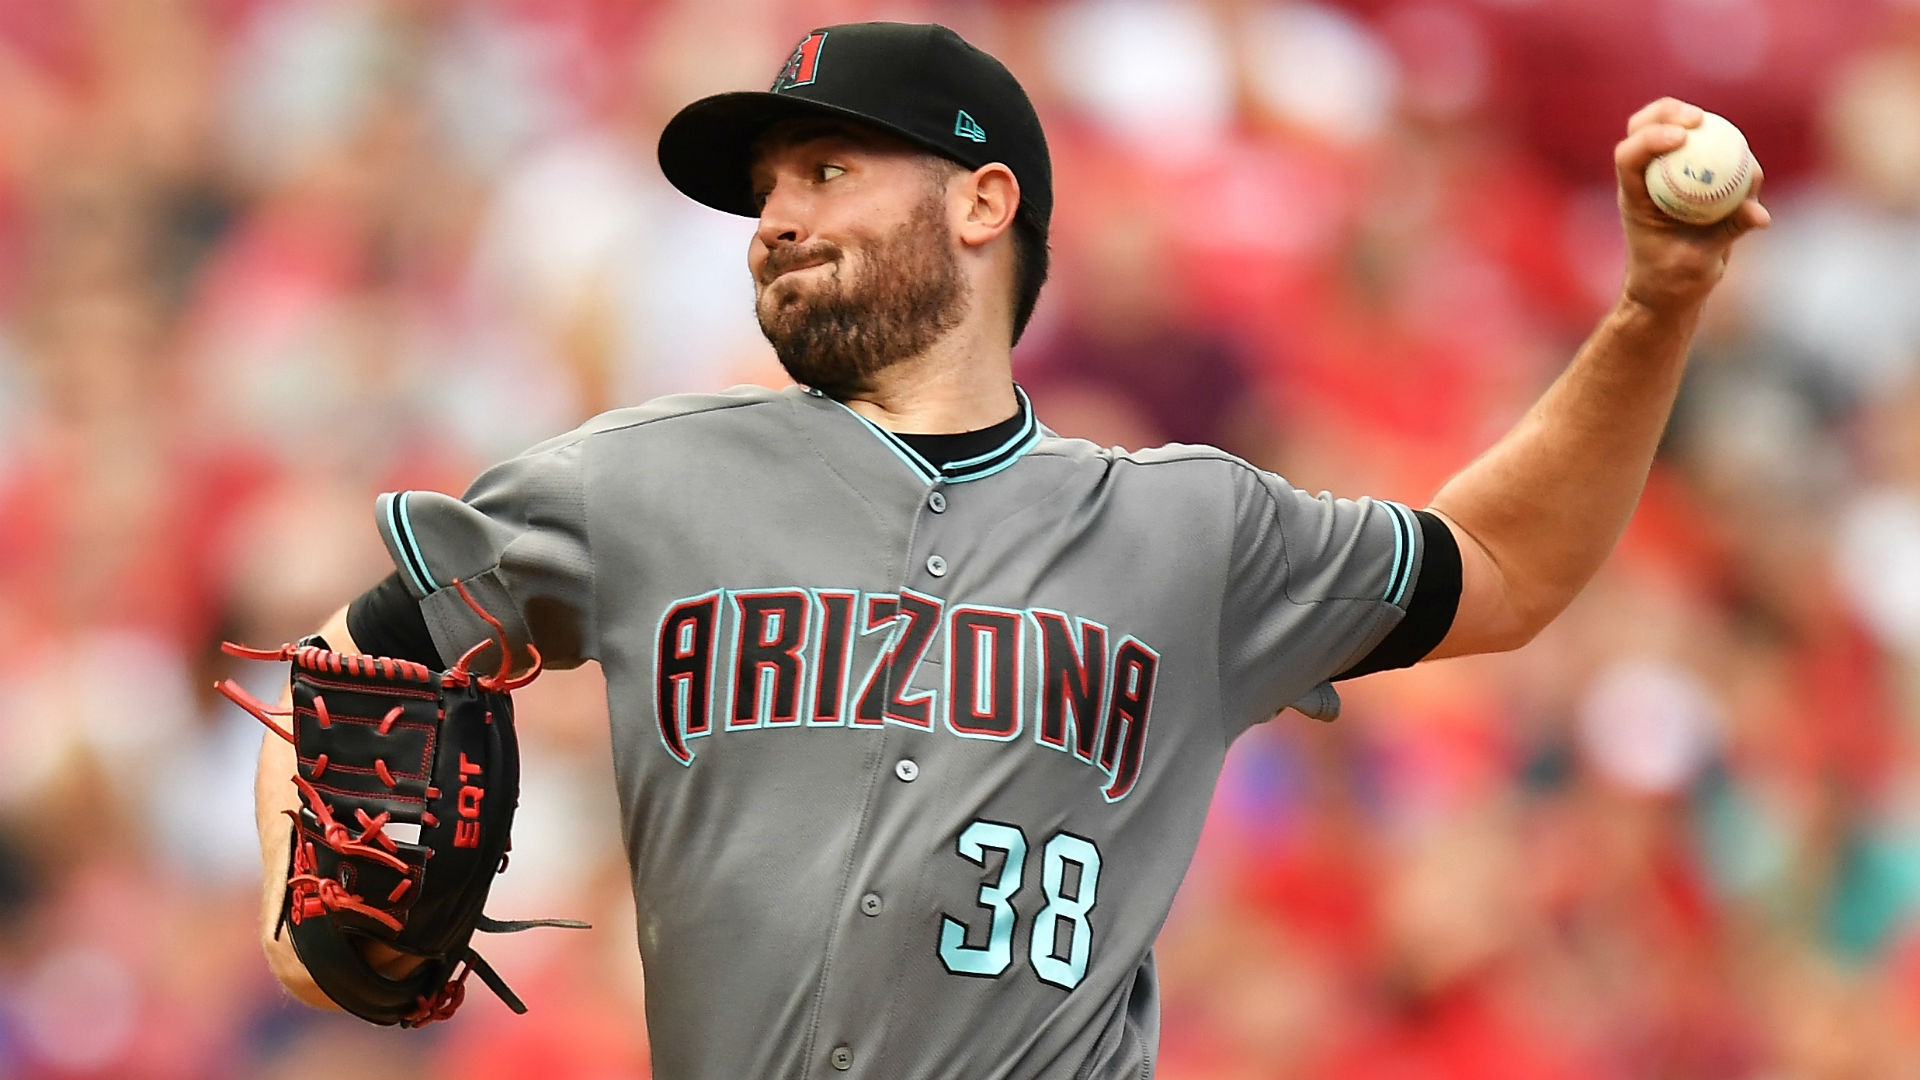 Diamondbacks starter Robbie Ray leaves game after getting hit in head